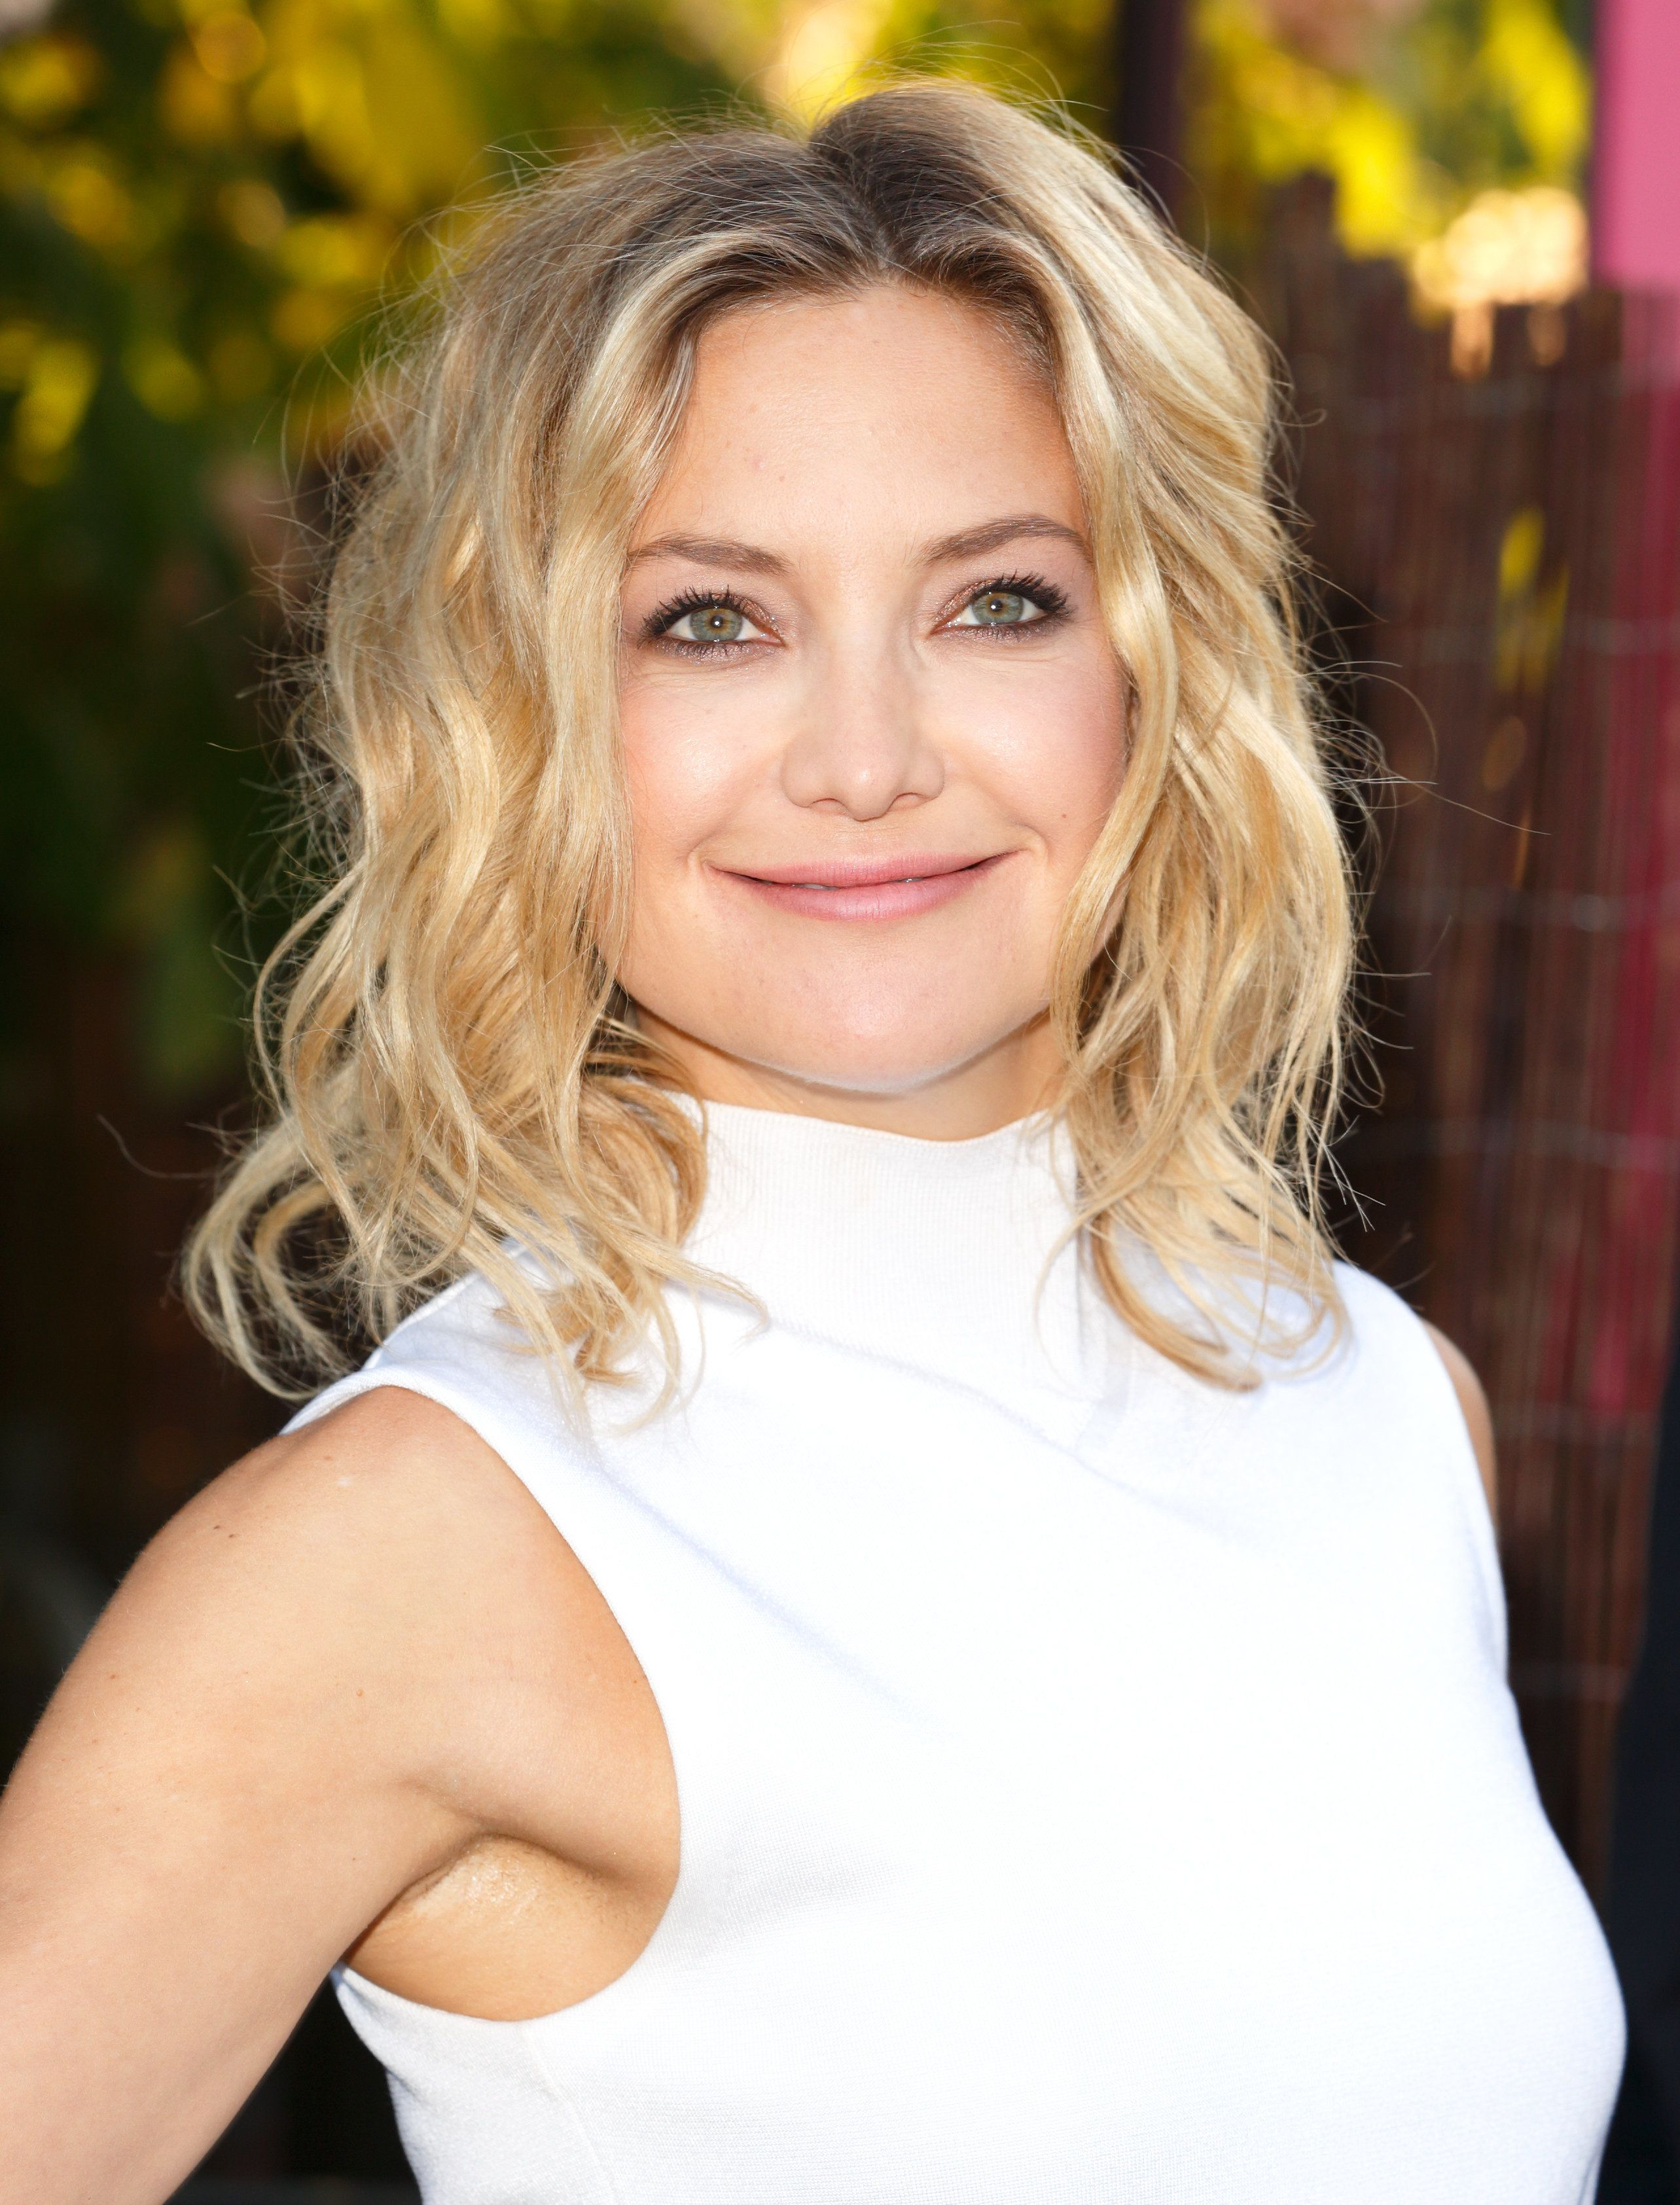 LONDON, UNITED KINGDOM - JULY 02: (EMBARGOED FOR PUBLICATION IN UK NEWSPAPERS UNTIL 48 HOURS AFTER CREATE DATE AND TIME) Kate Hudson attends the Serpentine Gallery Summer Party at The Serpentine Gallery on July 2, 2015 in London, England. (Photo by Max Mumby/Indigo/Getty Images)